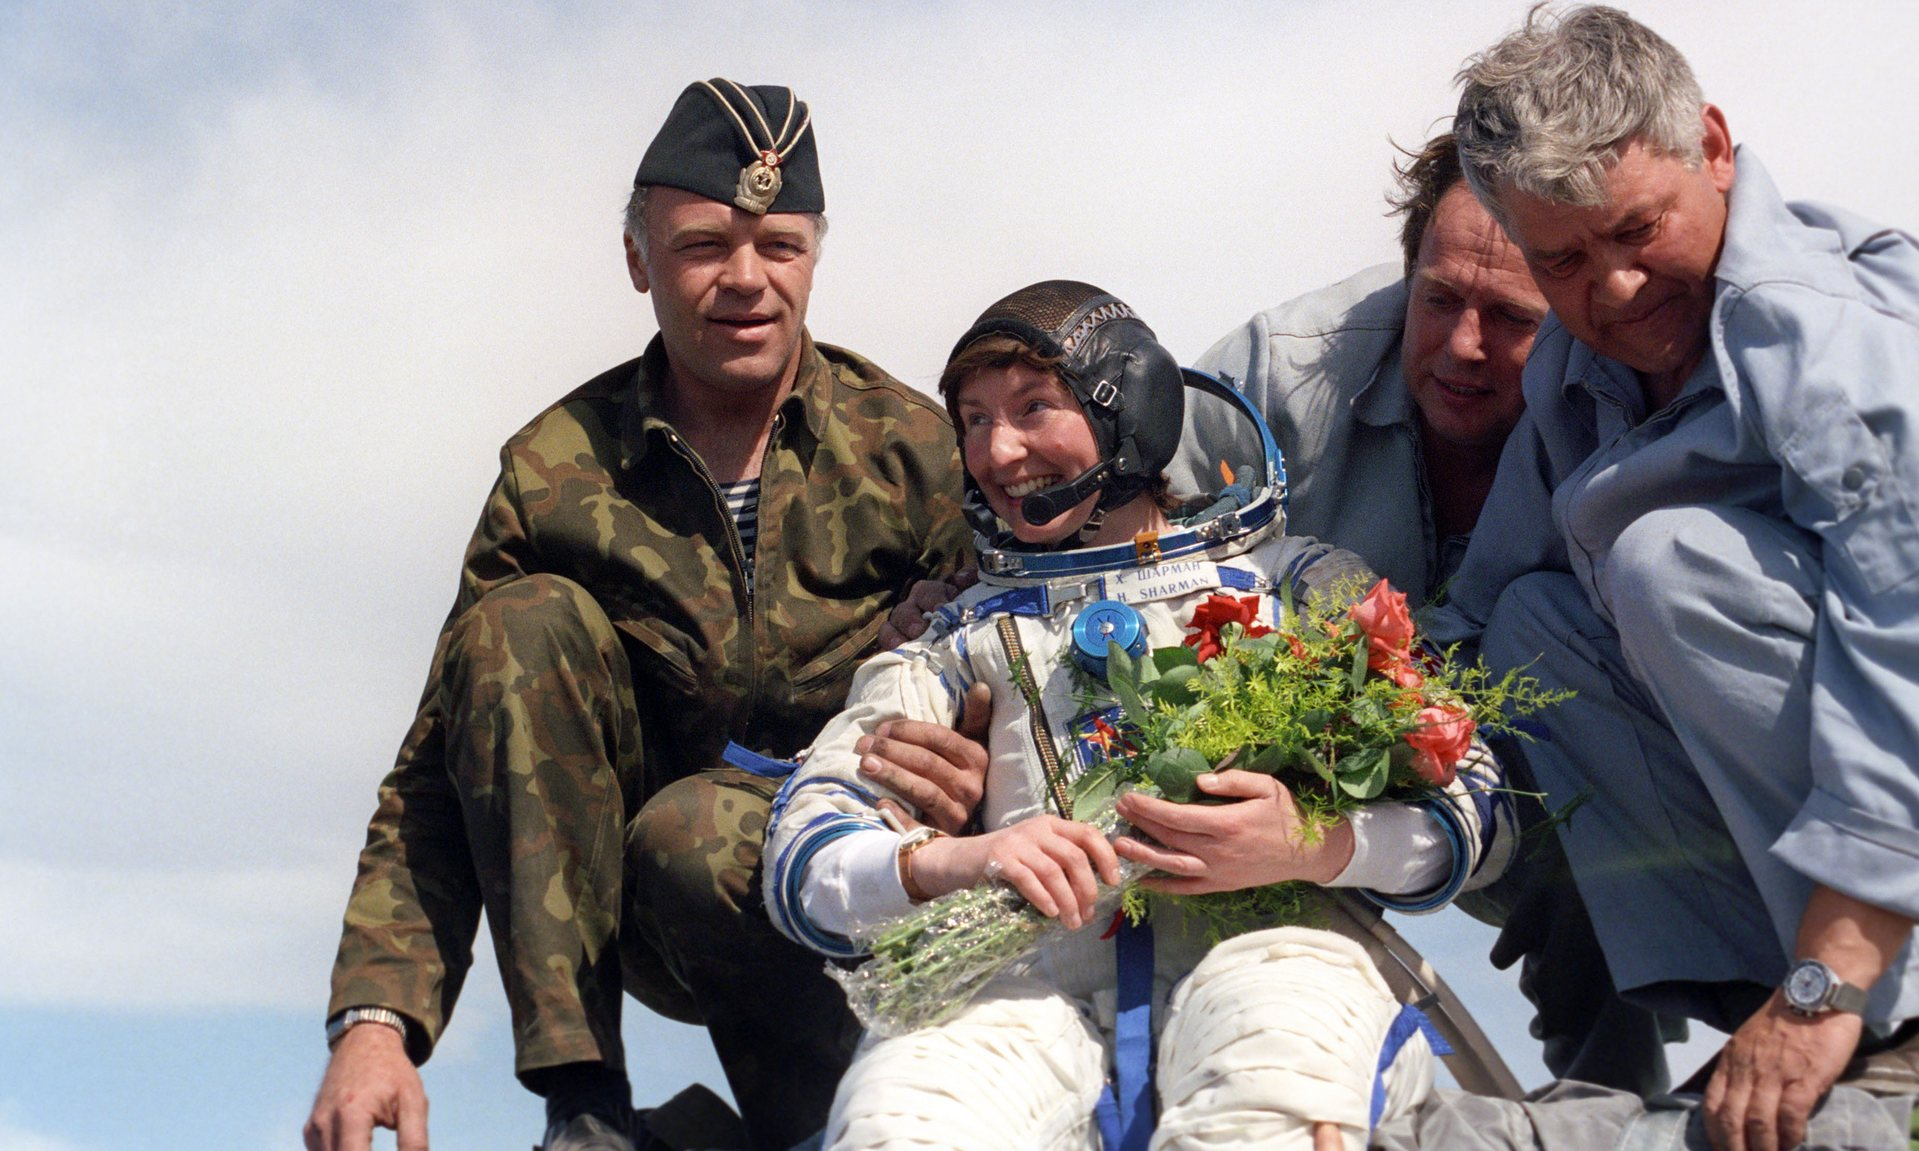 Britain's First Astronaut -Helen Sharman Landing After Her 8-Day Mission [Copyright: Alamy / The Guardian]